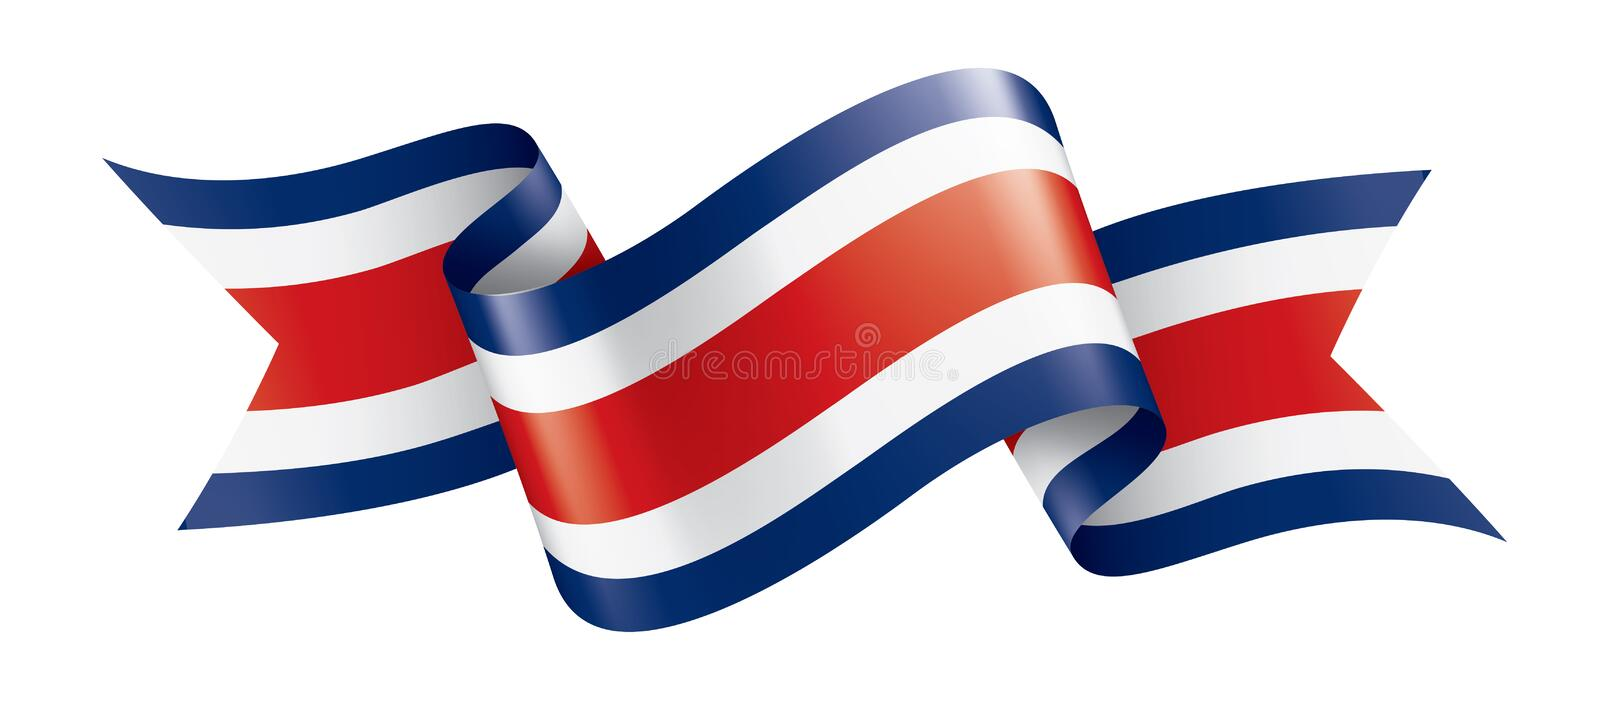 Costa Rica flag, vector illustration on a white background. Costa Rica national flag, vector illustration on a white background stock illustration